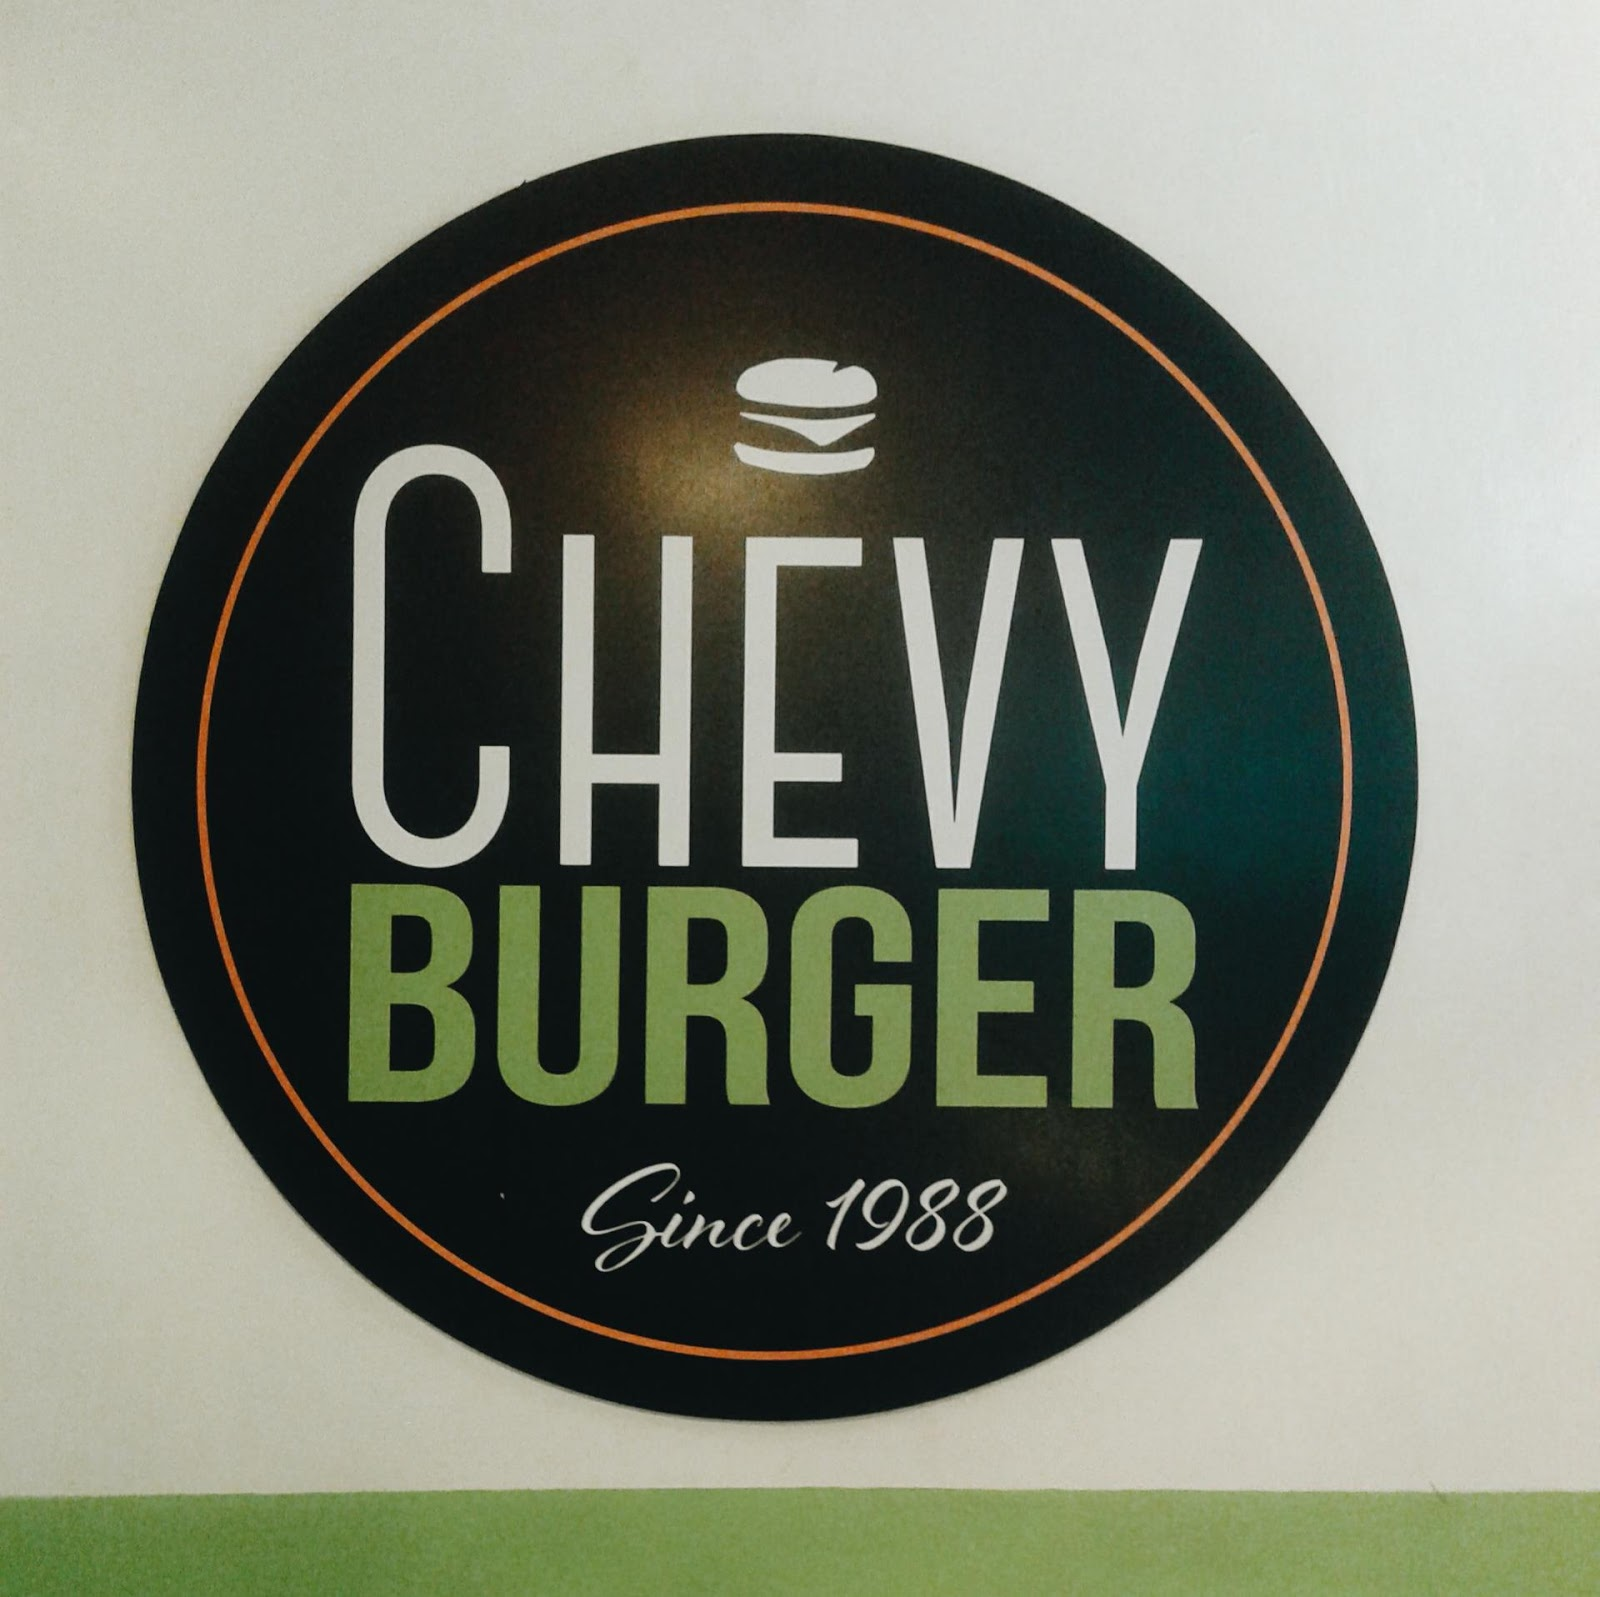 CHEVY BURGER